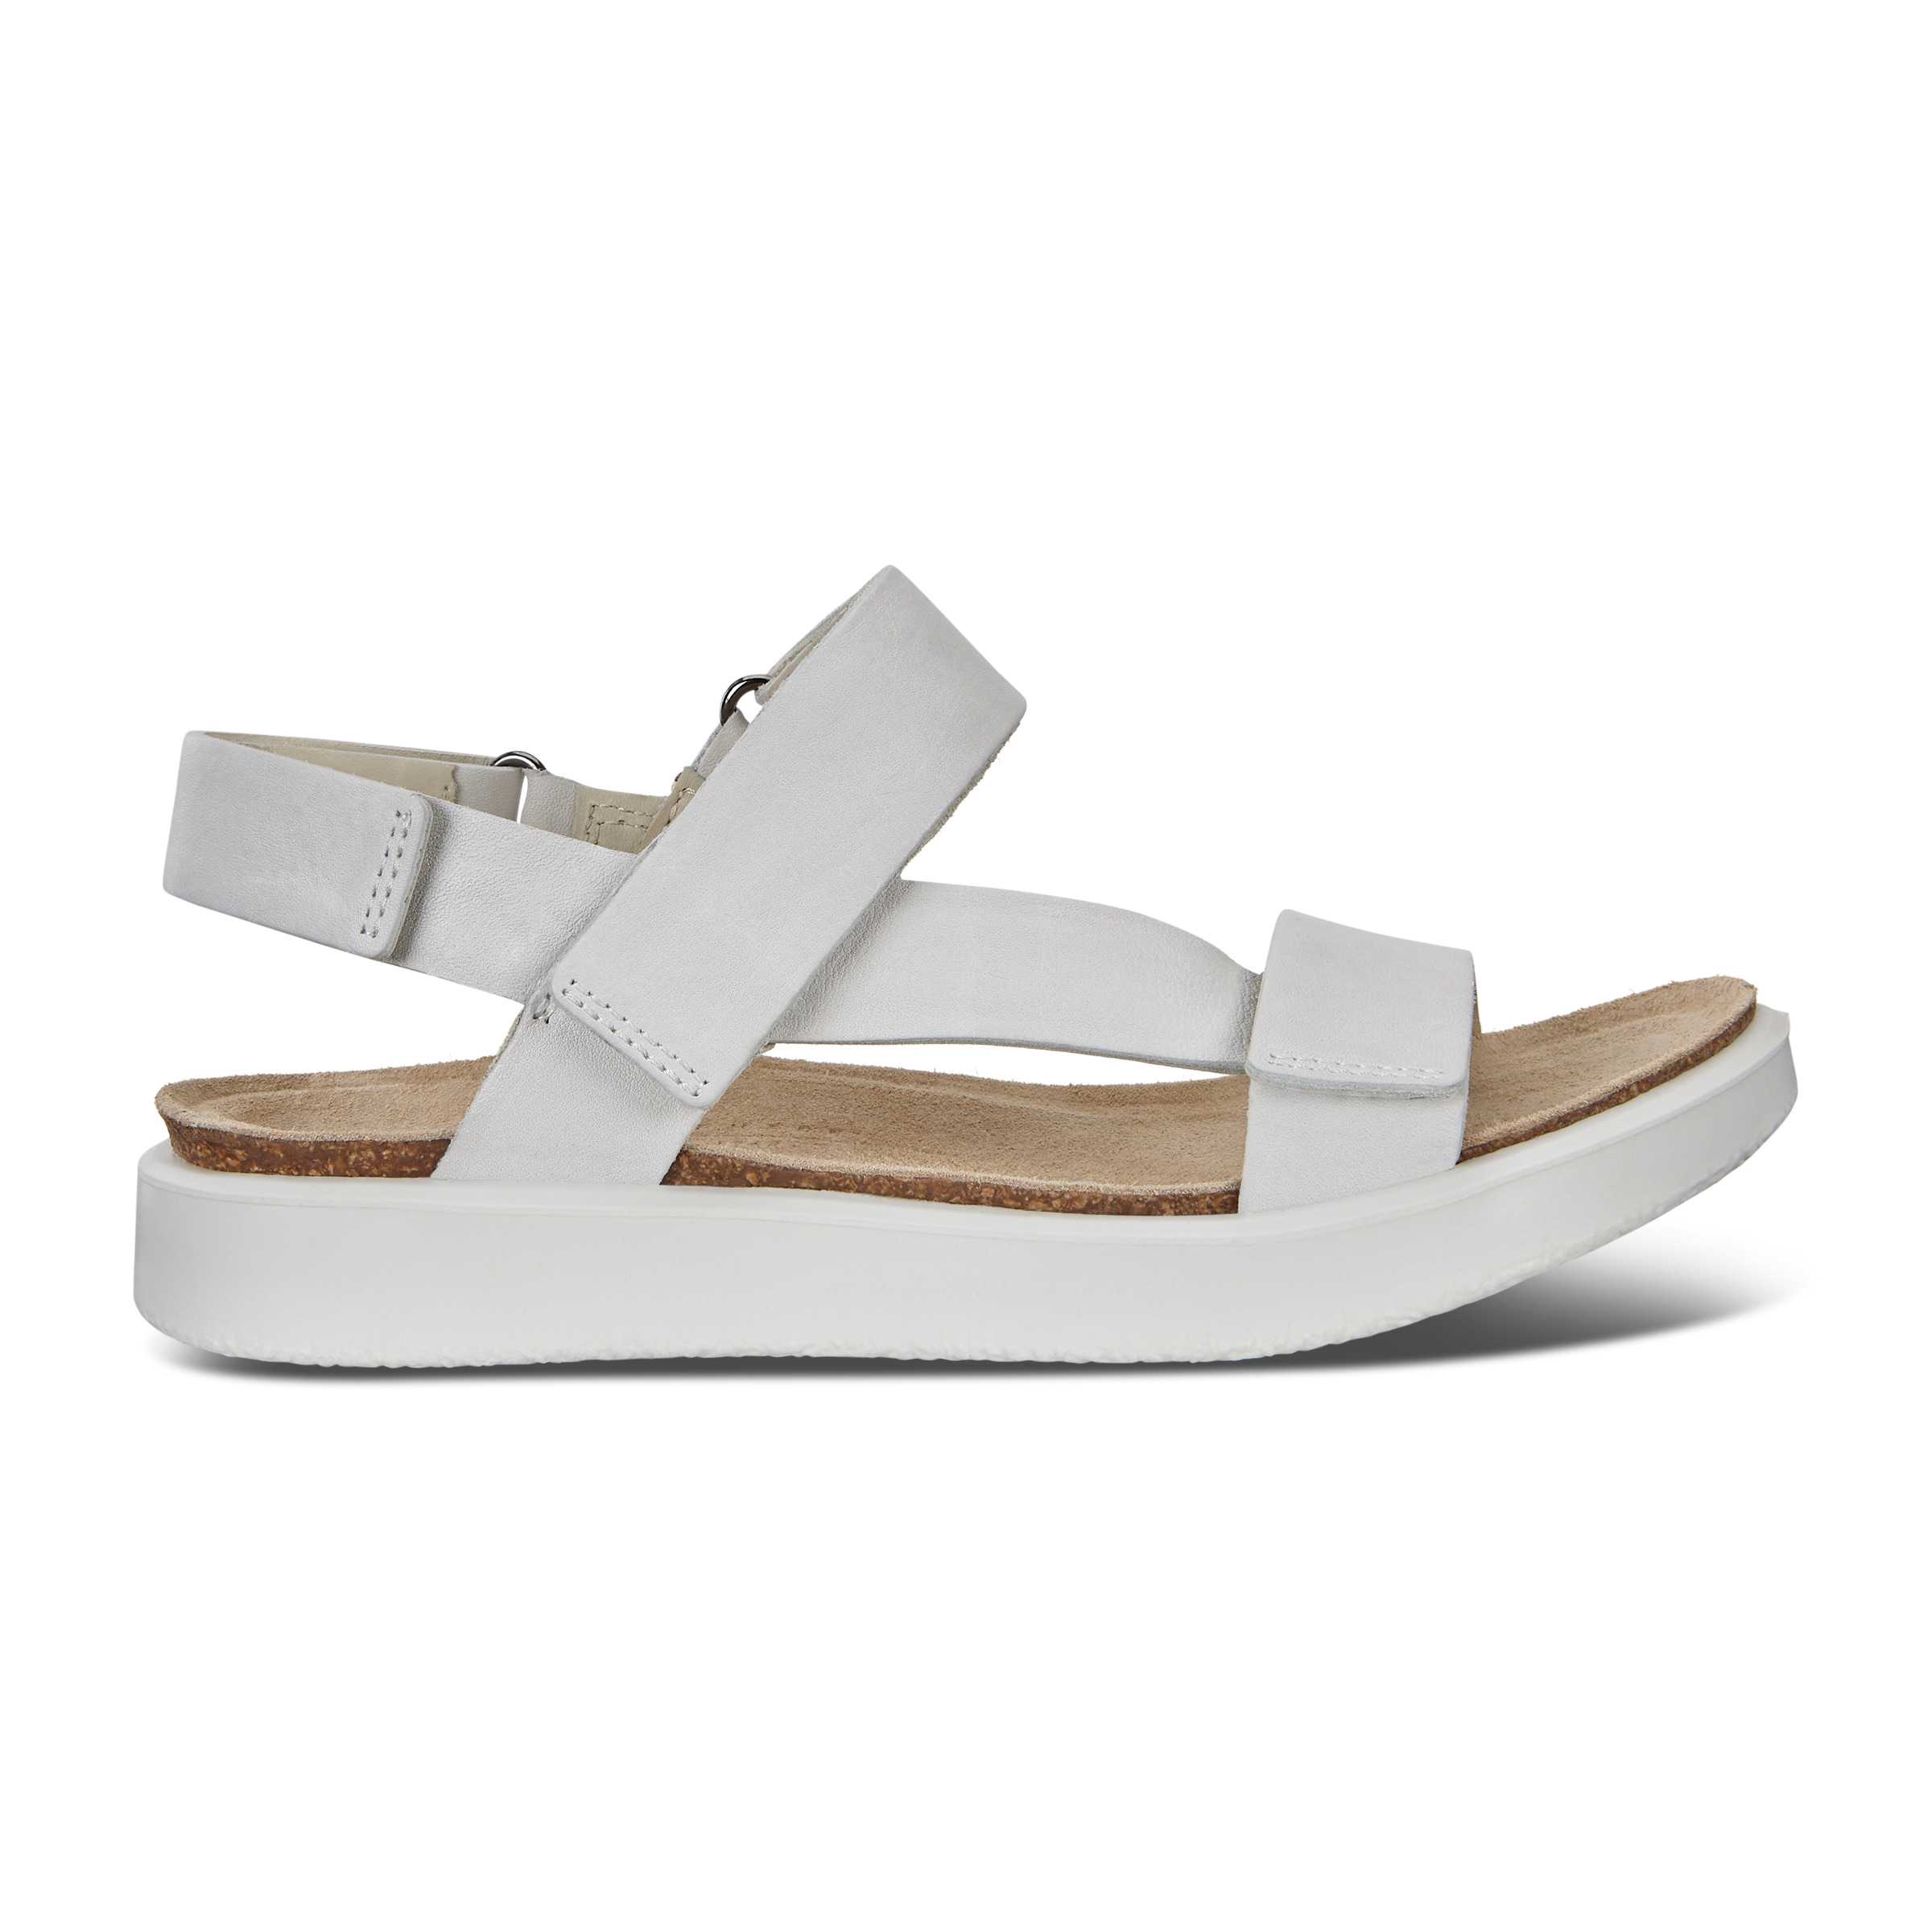 UPC 809704946498 product image for ECCO Corksphere Sandal W Shoe Size 5-5.5 White | upcitemdb.com